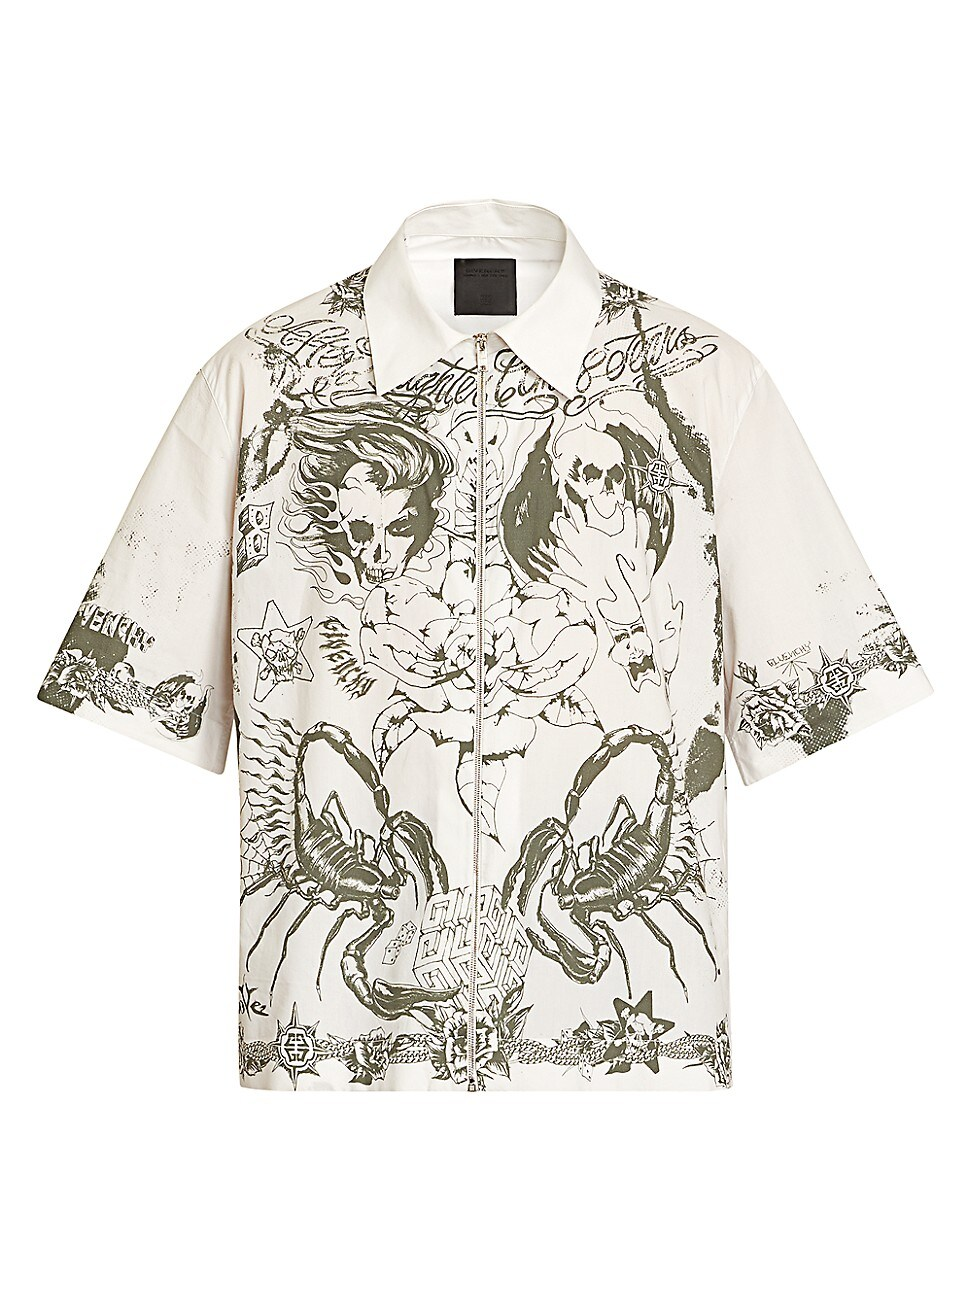 Givenchy Cottons MEN'S SHORT-SLEEVE GRAPHIC PRINT SHIRT